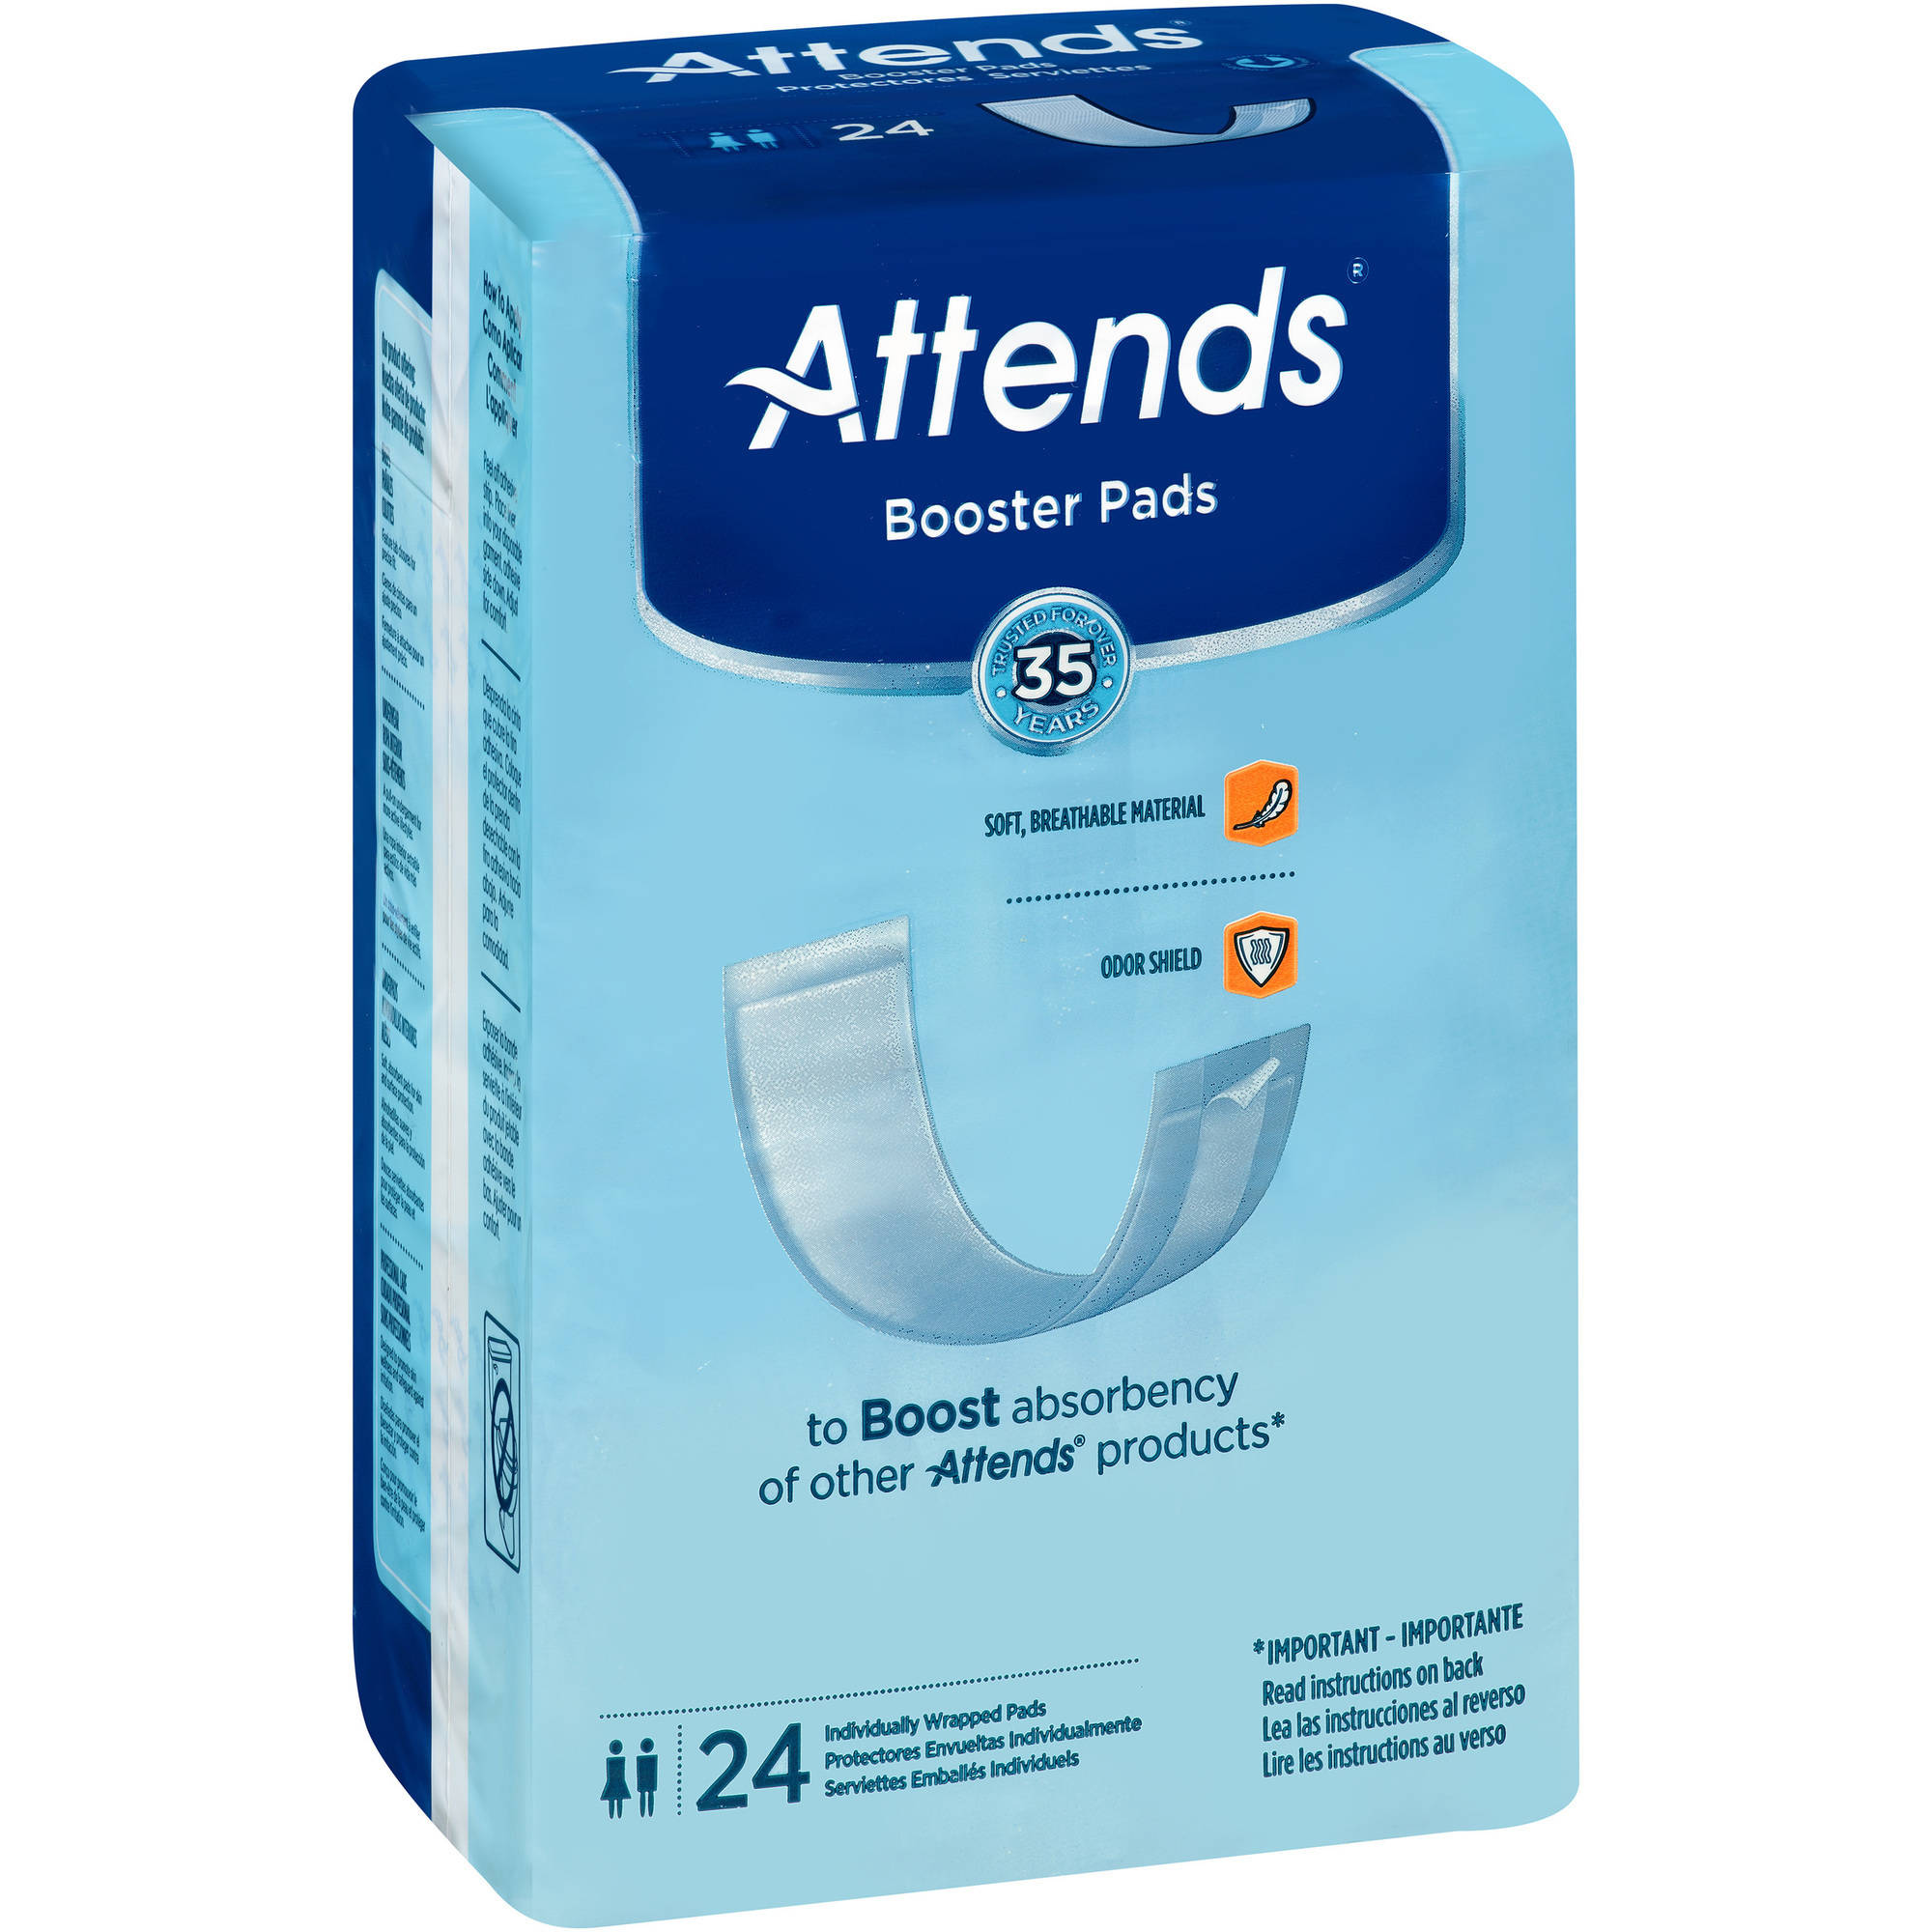 Attends Booster Pads, 24 count, (Pack of 8)